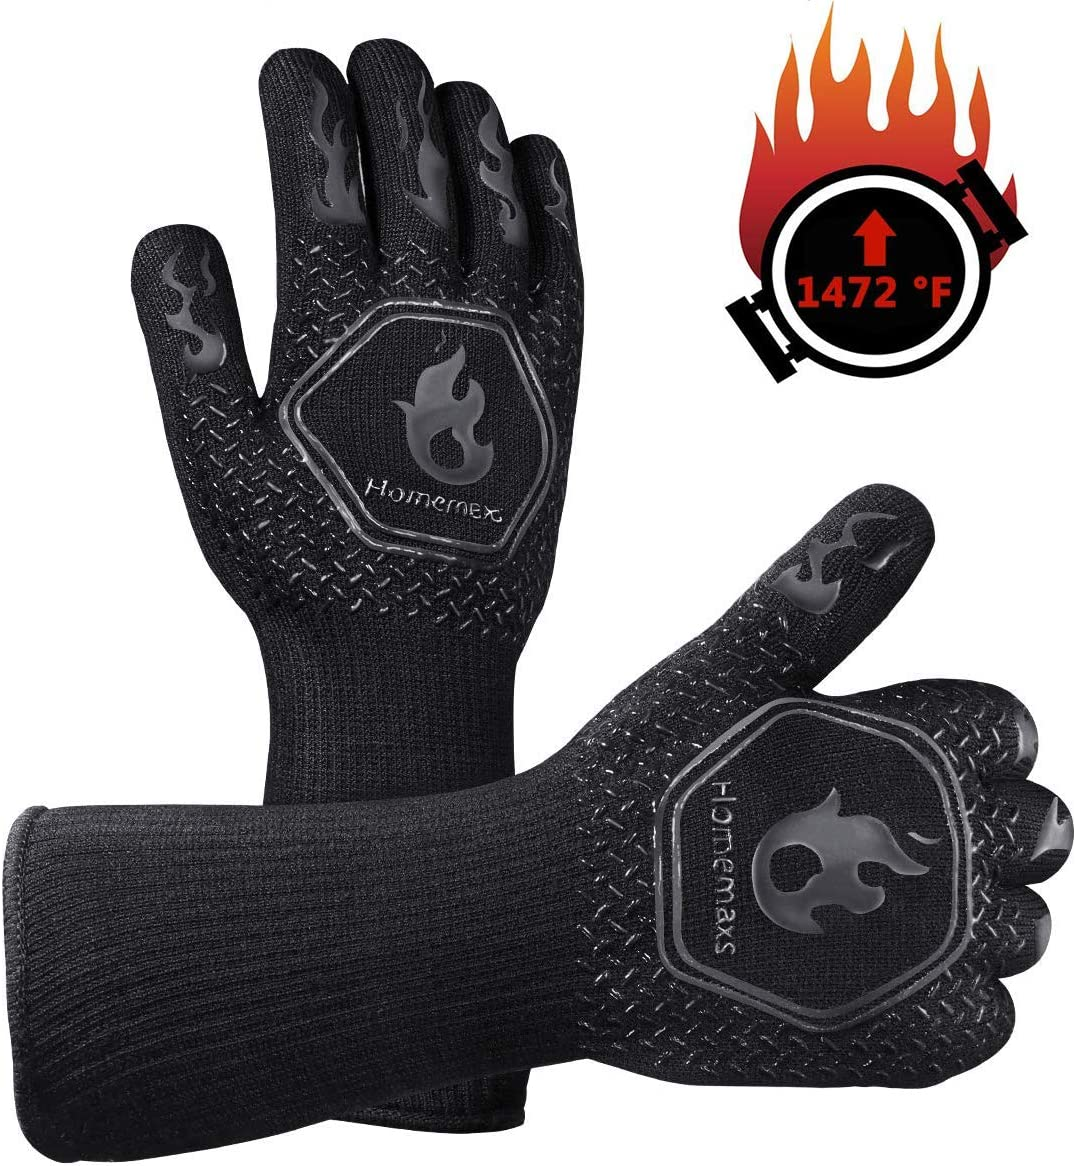 Homemaxs BBQ Gloves 1472? Extreme Heat Resistant Grill Gloves, Food Grade Kitchen Oven Mitts, Silicone Non-Slip Cooking Gloves for Barbecue, Cooking, Baking, Welding, Cutting, 14 Inch (Style 2-Black)